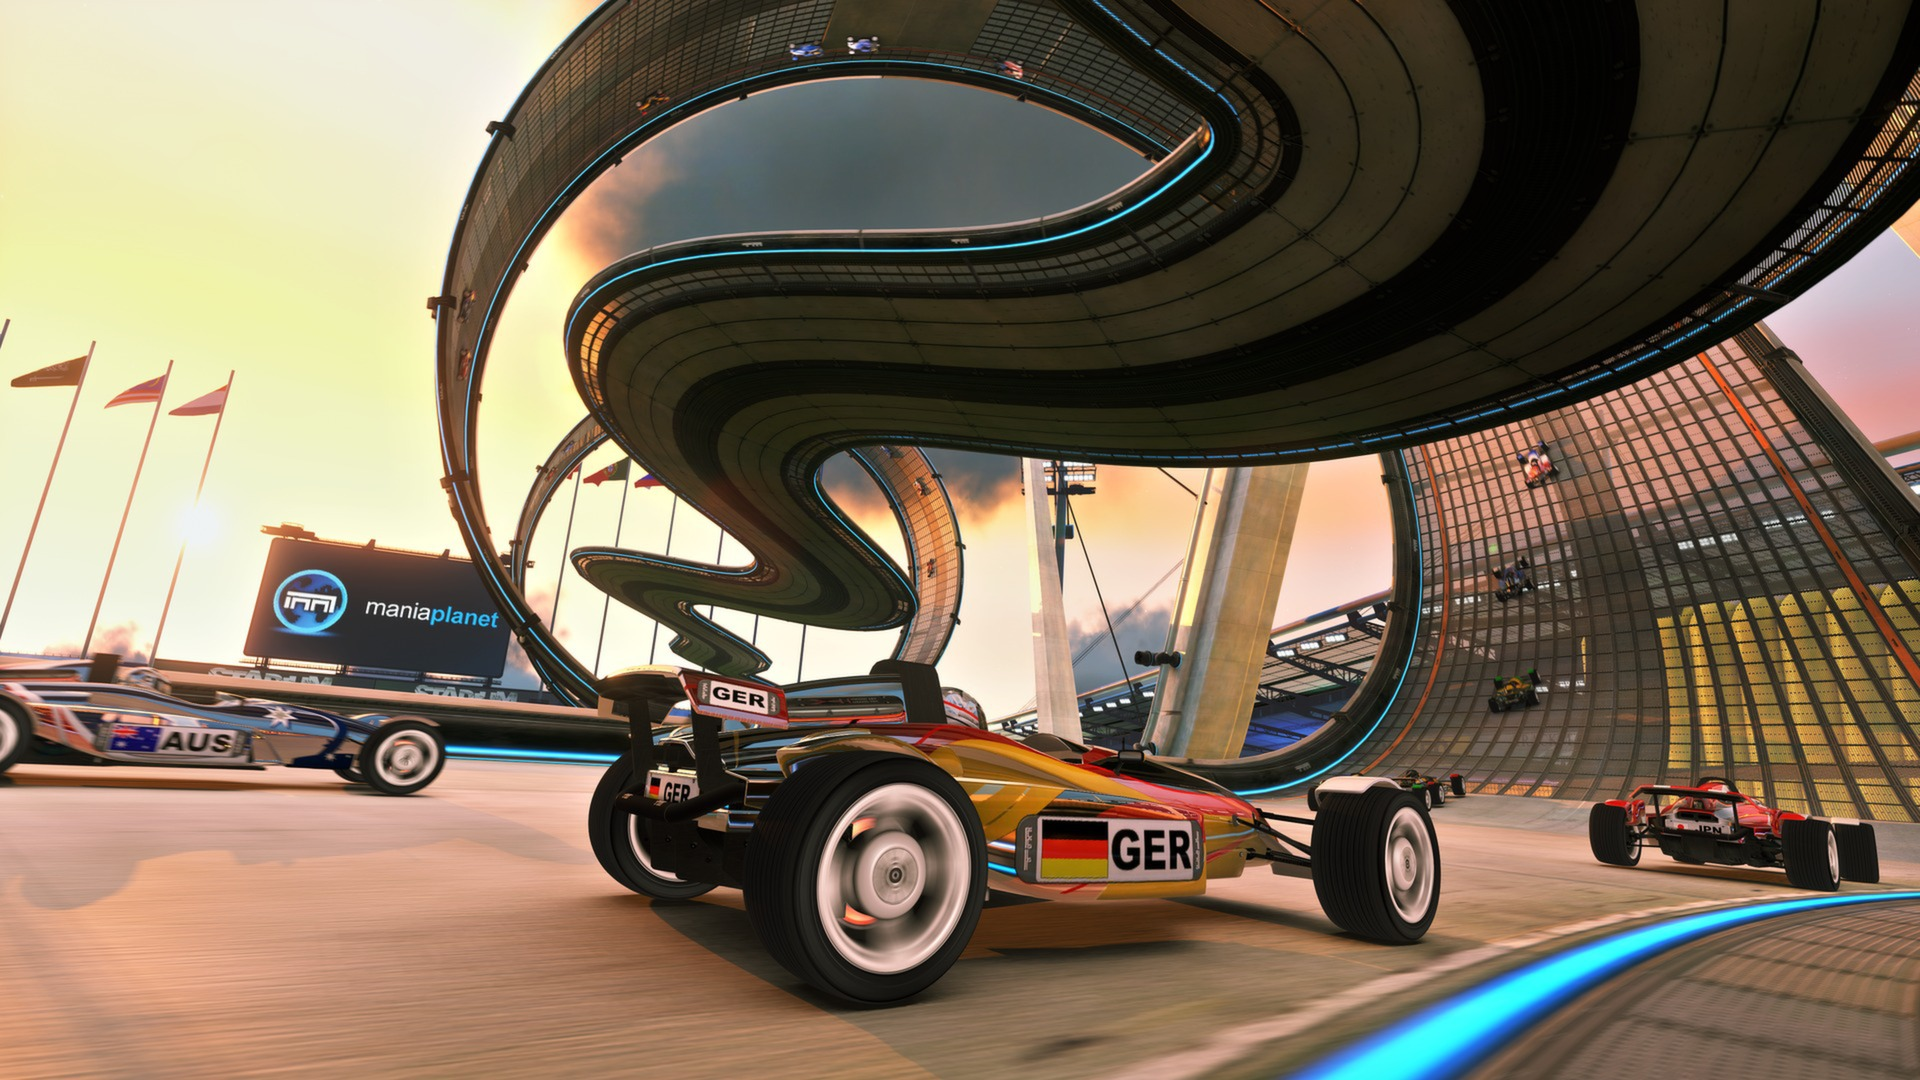 NATIONS FRANCAIS TRACKMANIA GRATUIT ESWC TÉLÉCHARGER